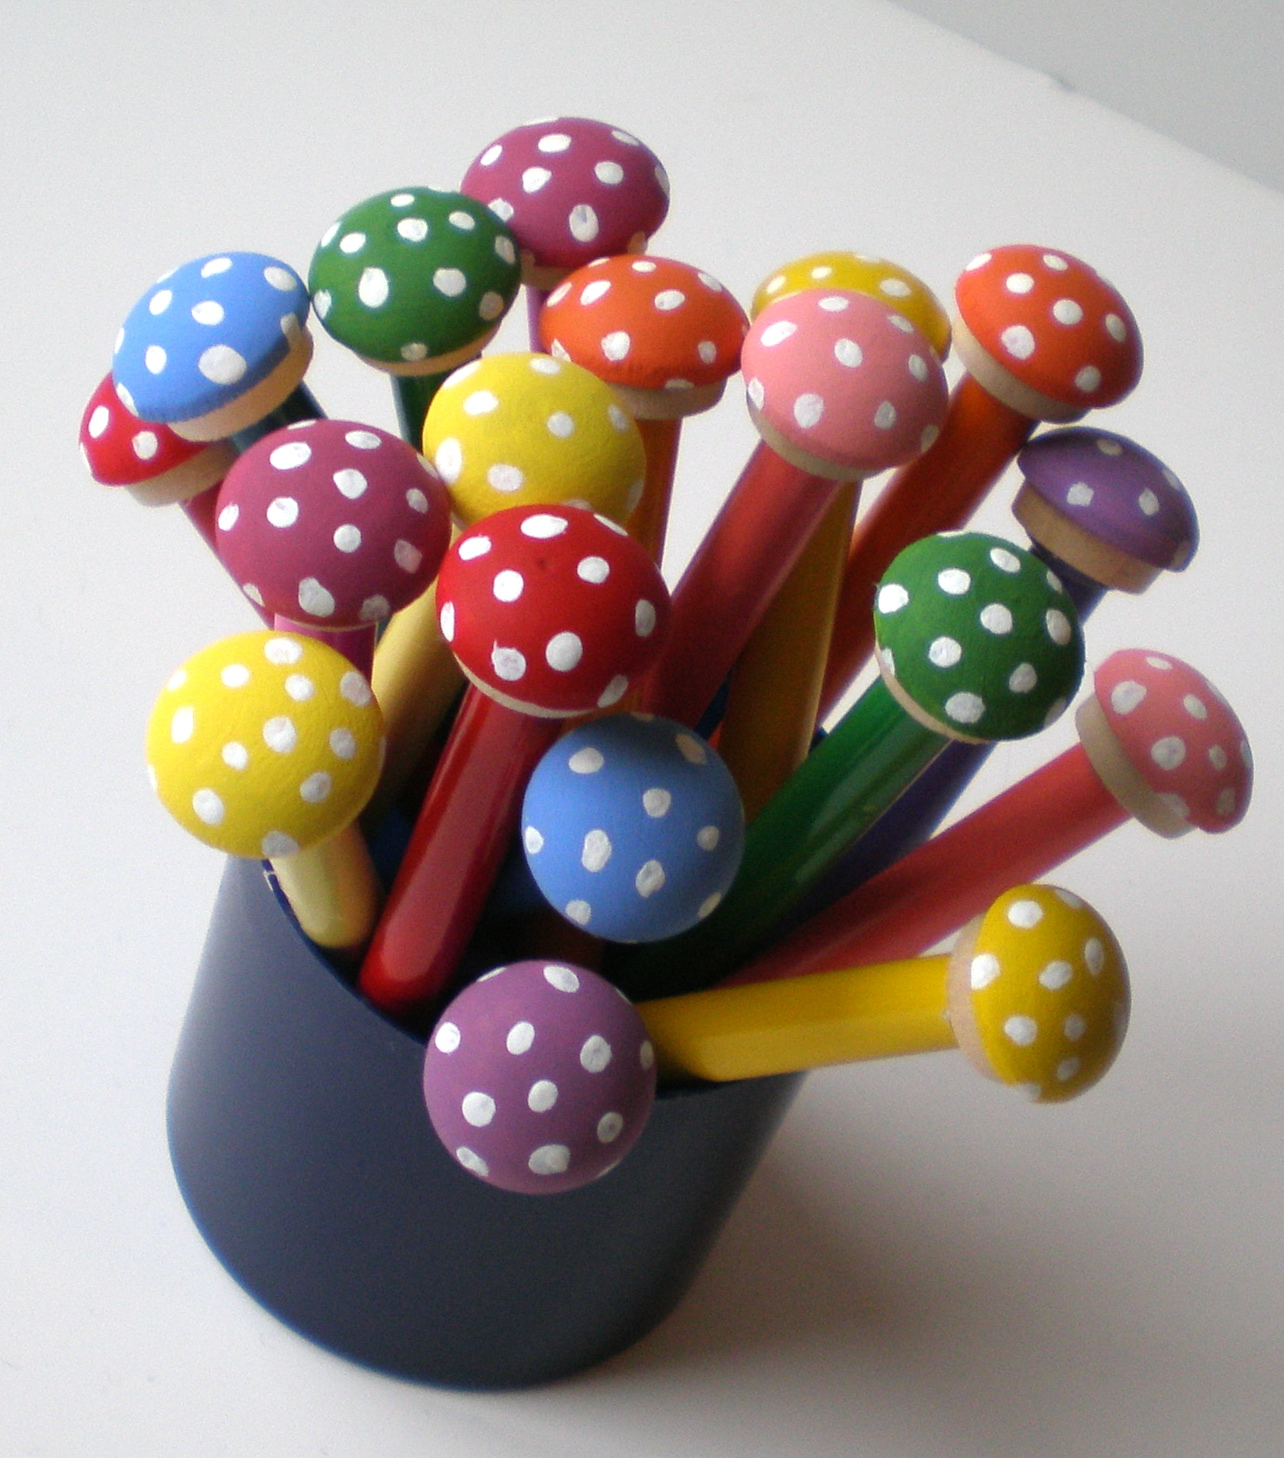 Tutorials crafts projects kids children handmade do it yourself do it yourself toadstool pencils solutioingenieria Image collections